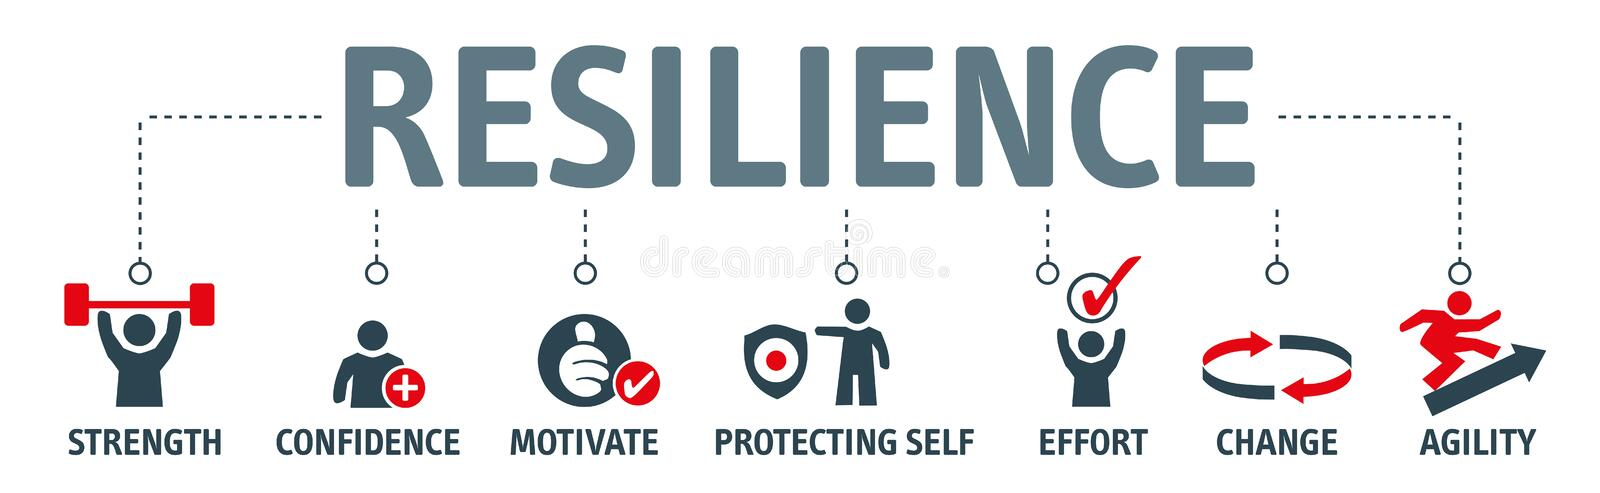 Resilience banner concept on white background stock illustration